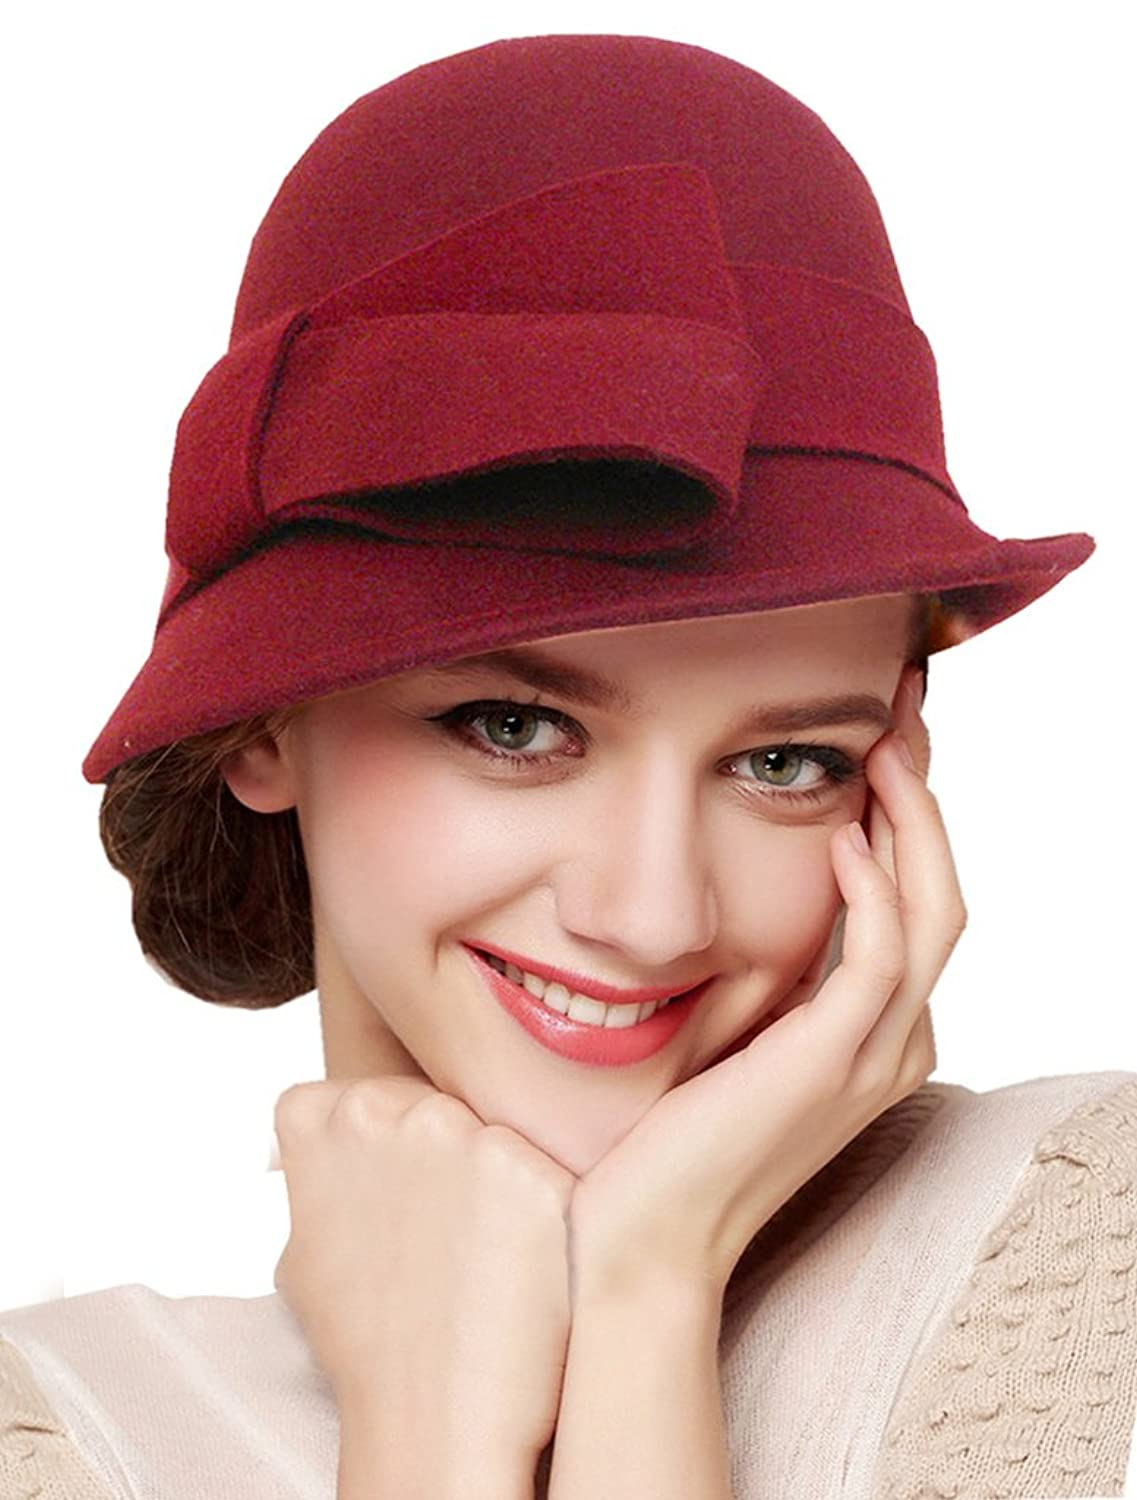 1930s Style Hats | 30s Ladies Hats Women Solid Color Winter Hat 100% Wool Cloche Bucket with Bow Accent $23.96 AT vintagedancer.com